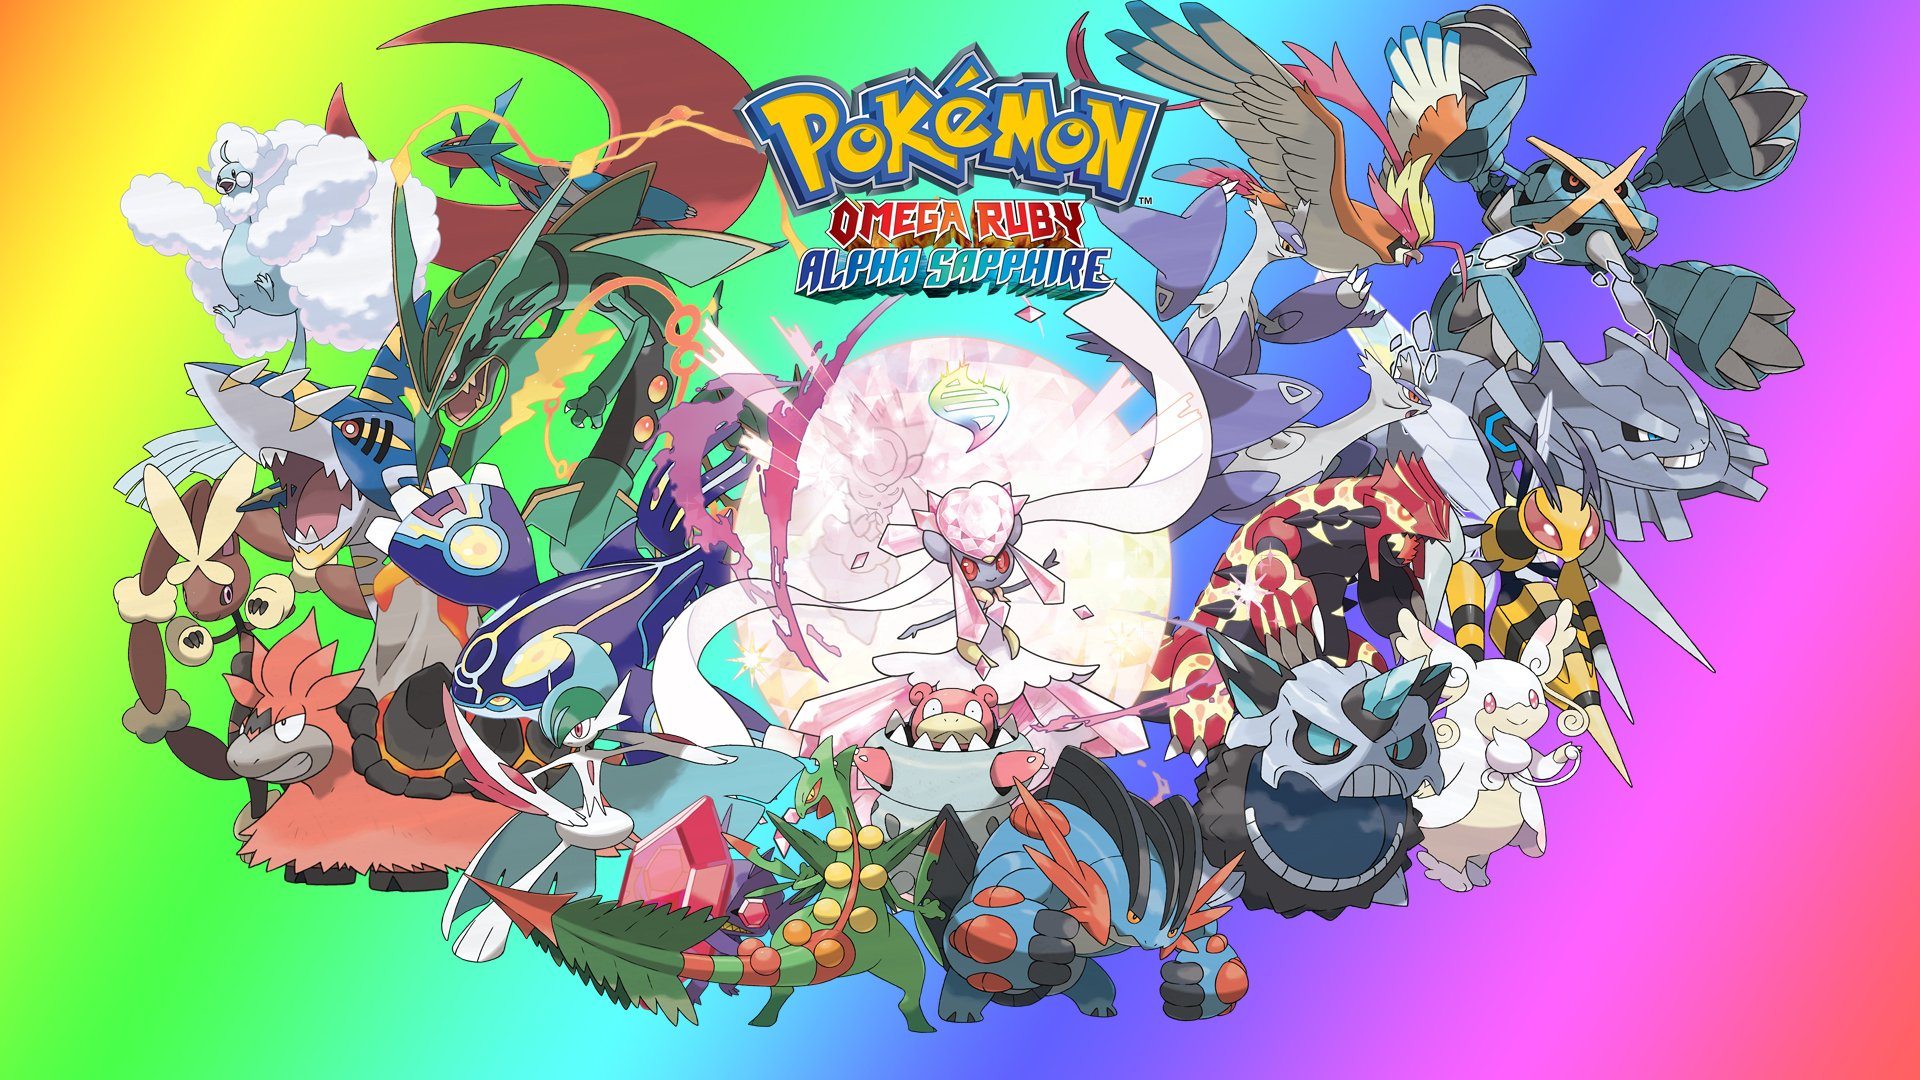 [48+] Pokemon Mega Evolution Wallpaper on WallpaperSafari